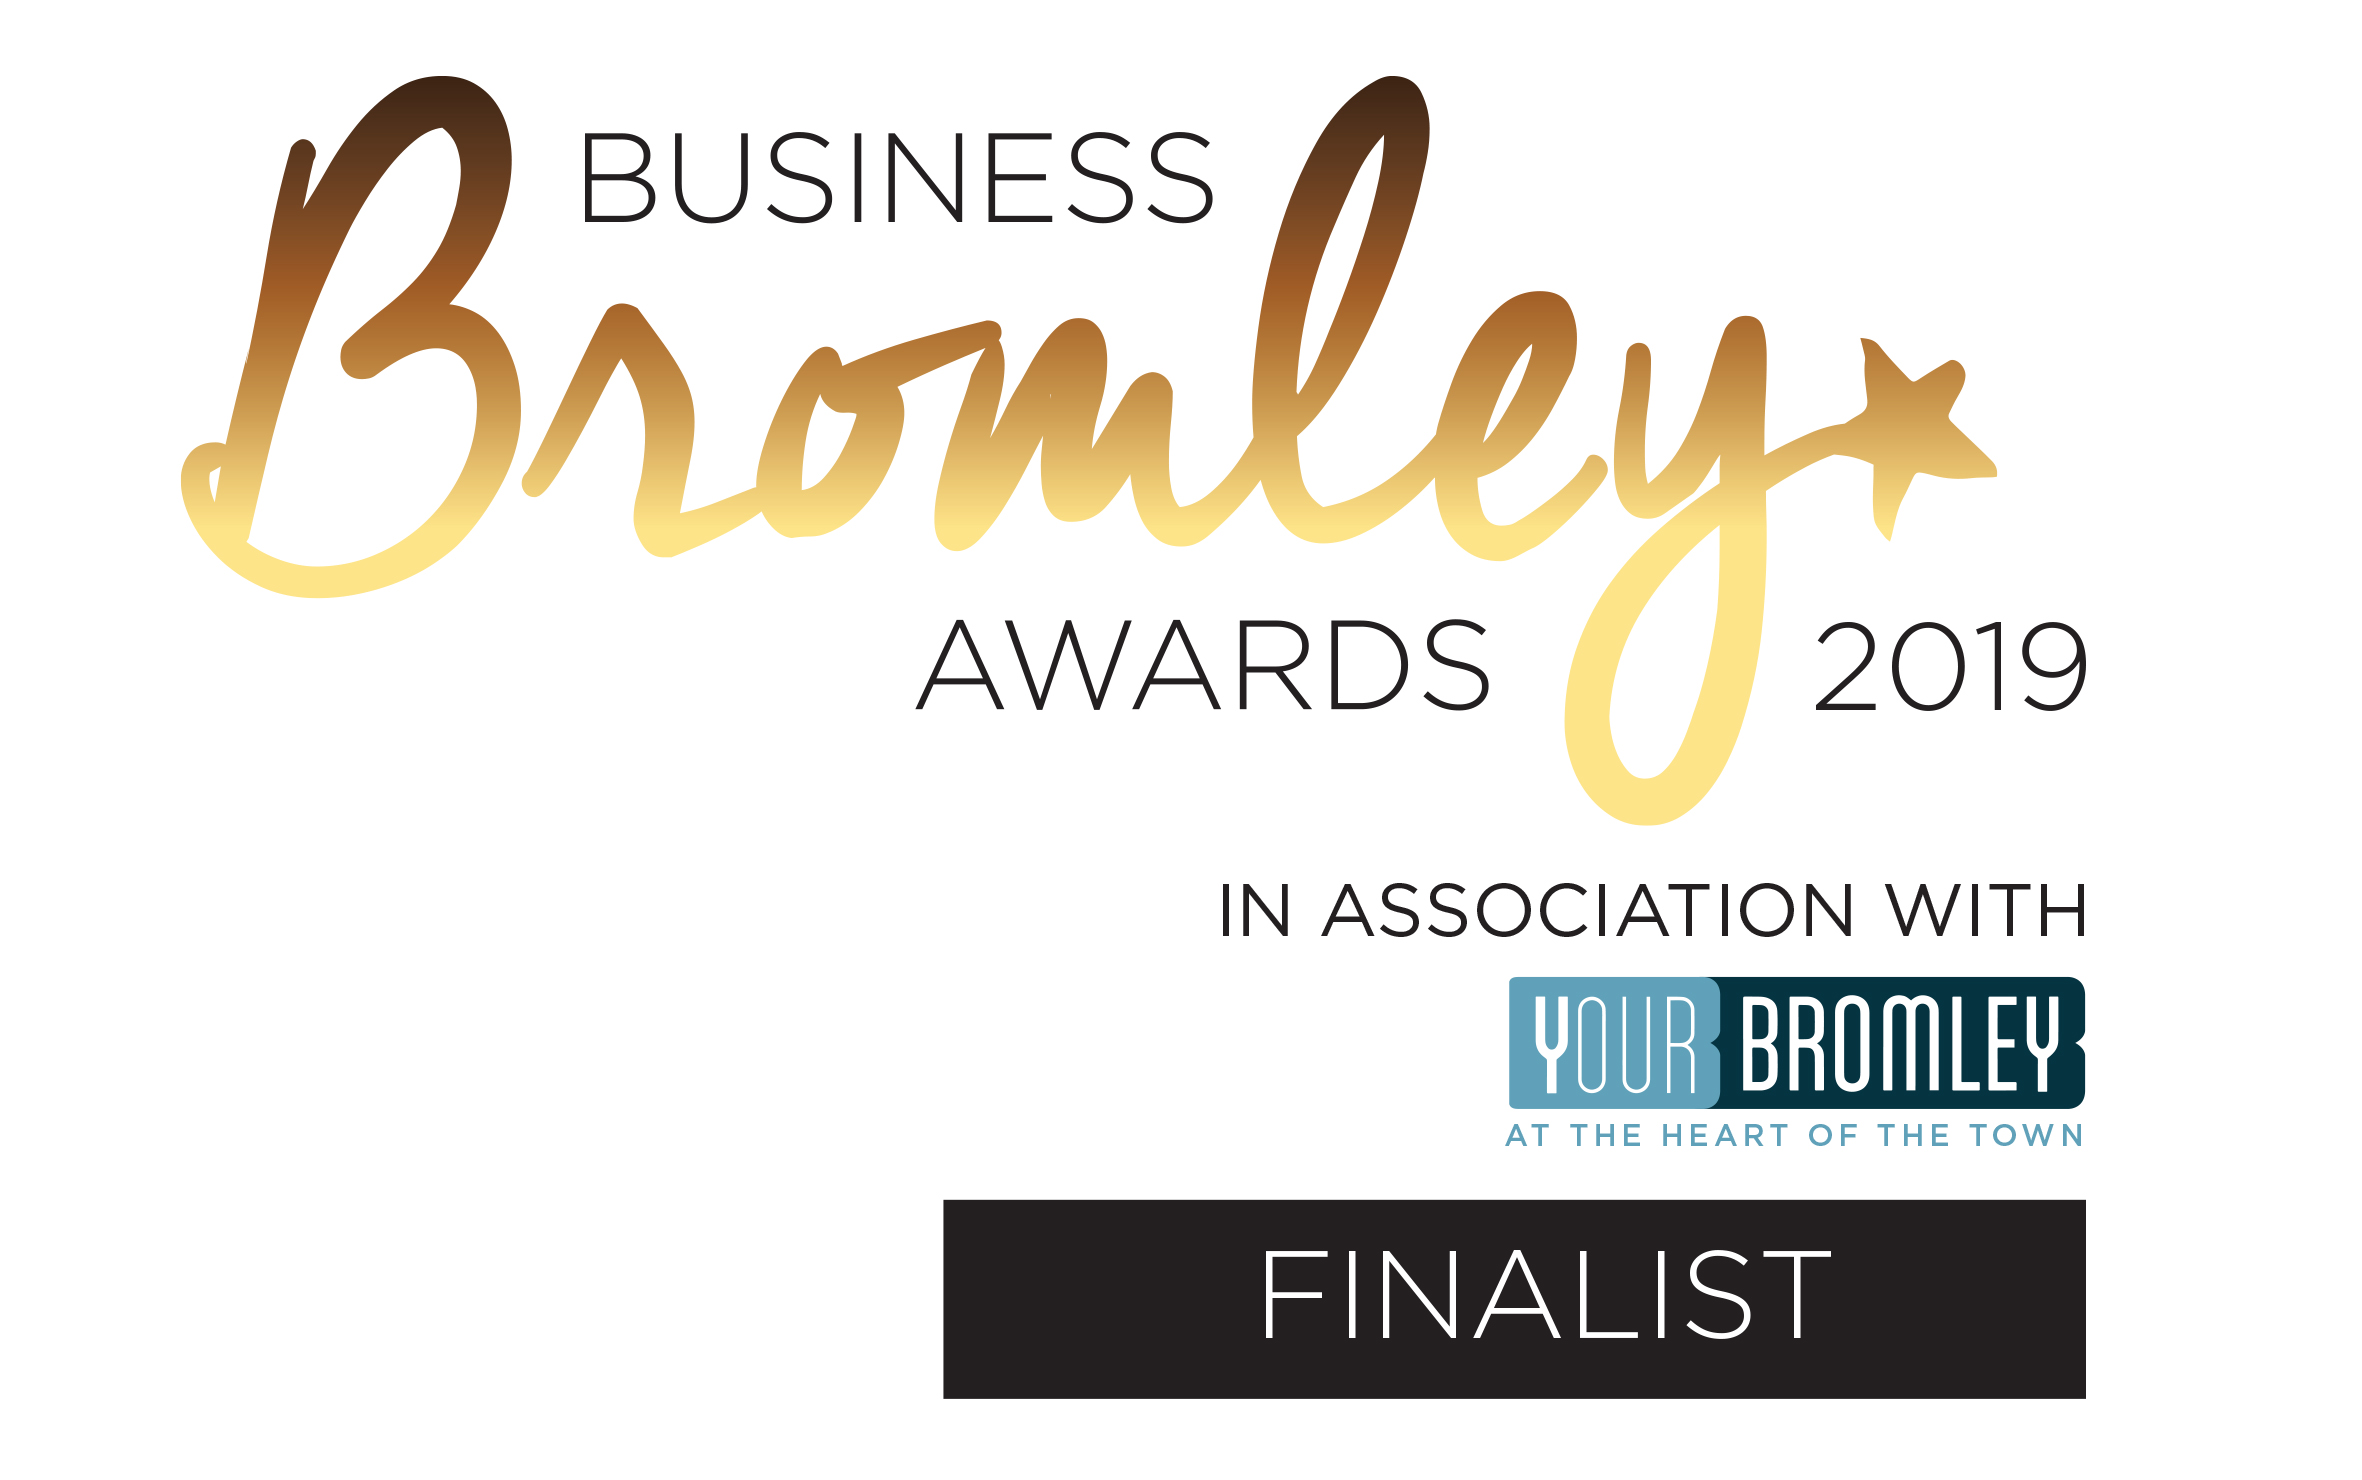 Bromley_Business_Awards_Logo_2019_FINALIST.jpg